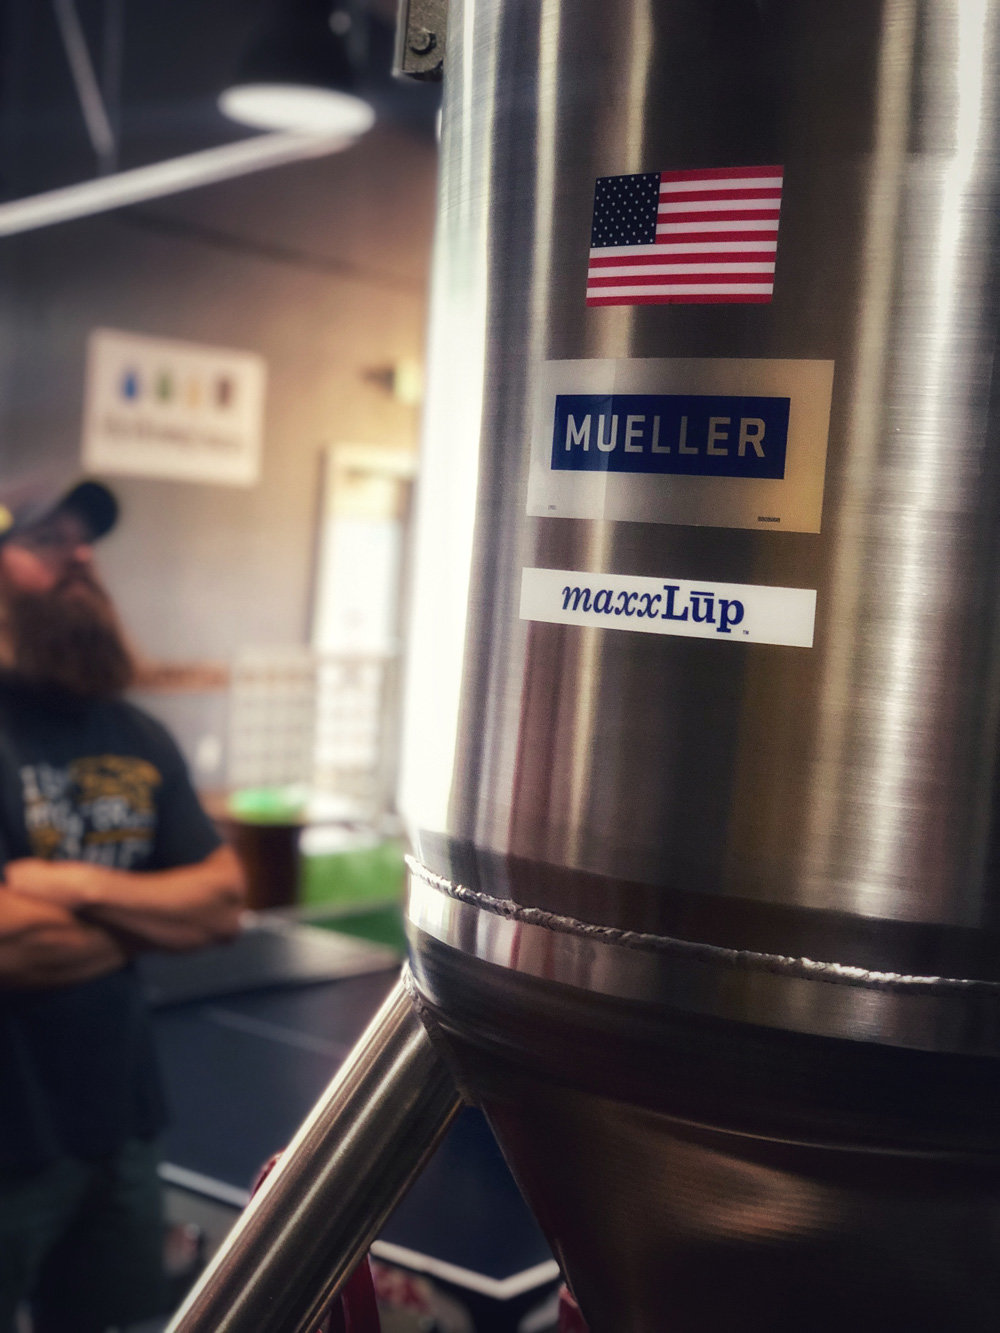 The new beer from 4 by 4 Brewing Co. is produced using maxxLup, a beer infusion system from Paul Mueller Co.